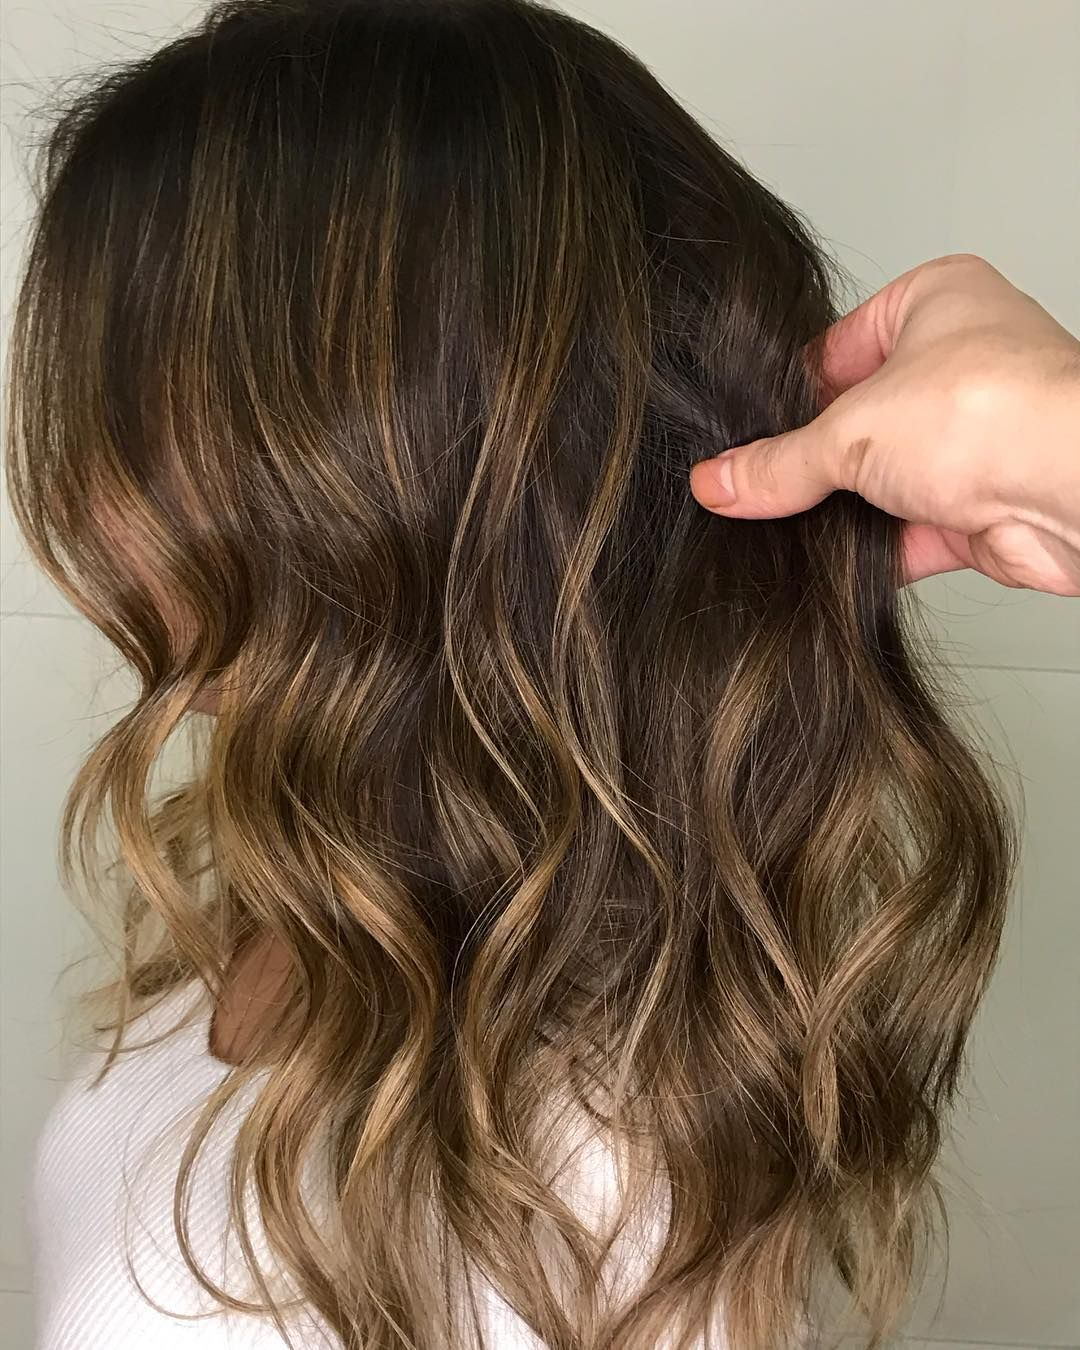 Pin By Maliaaa26 On 2017 Hair Color For Morena Hair Color Asian Hair Color For Morena Skin